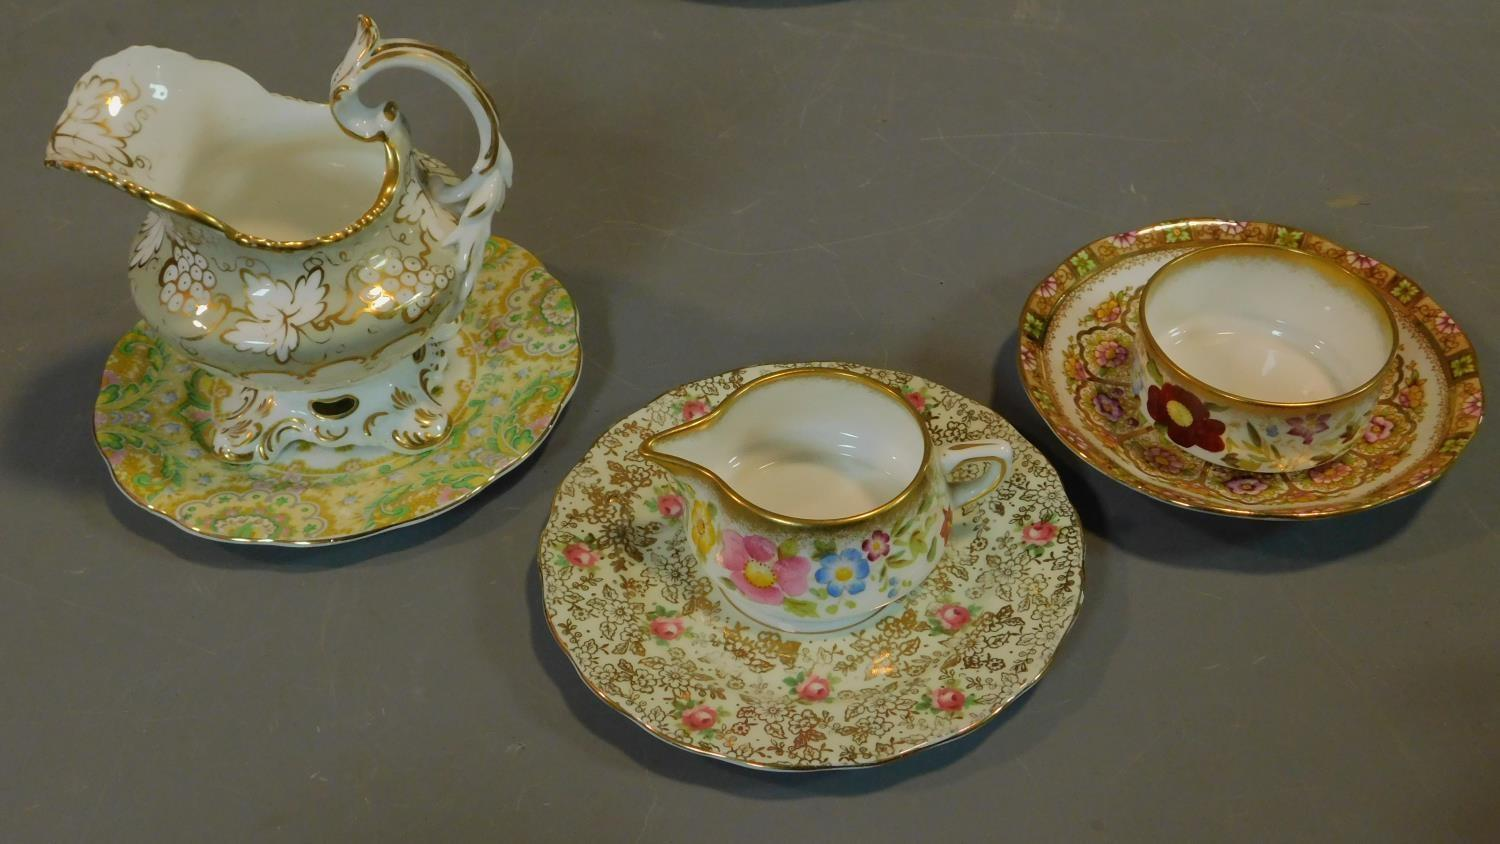 A miscellaneous collection of Victorian and later porcelain, vase, cups, saucers etc. - Image 11 of 14